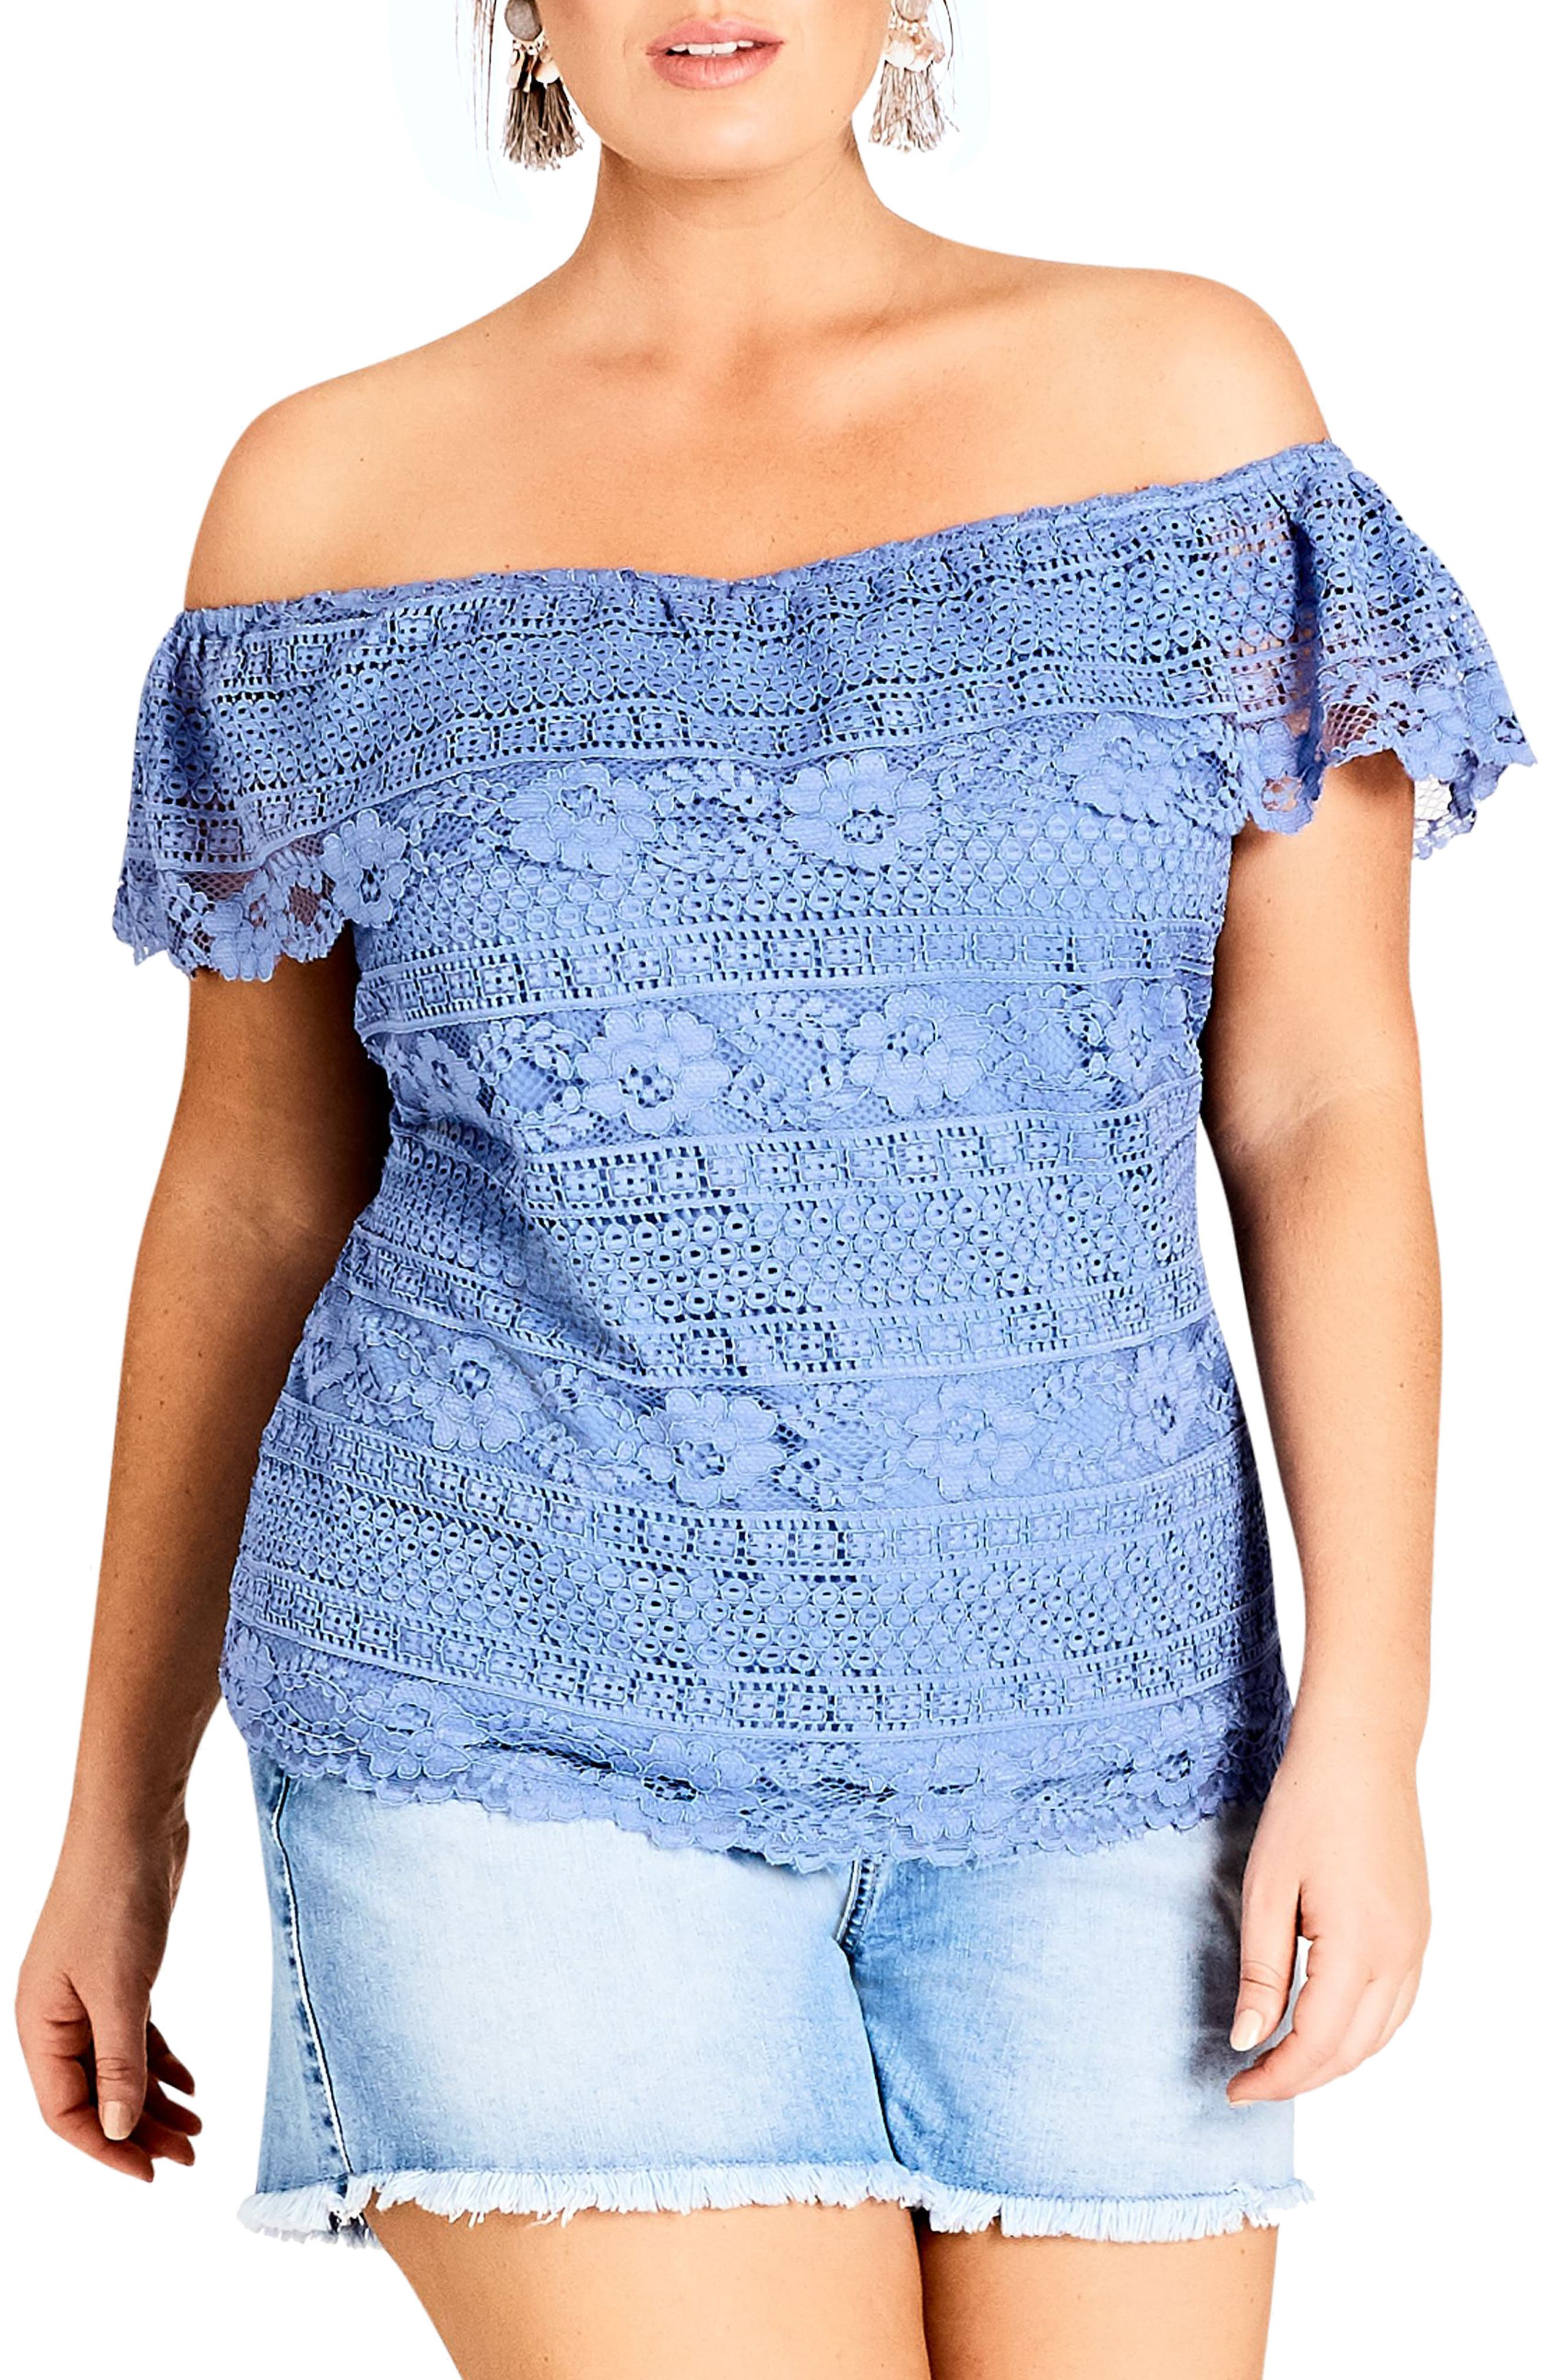 Summer Frill Lace Off the Shoulder Top,                             Main thumbnail 1, color,                             CORNFLOWER